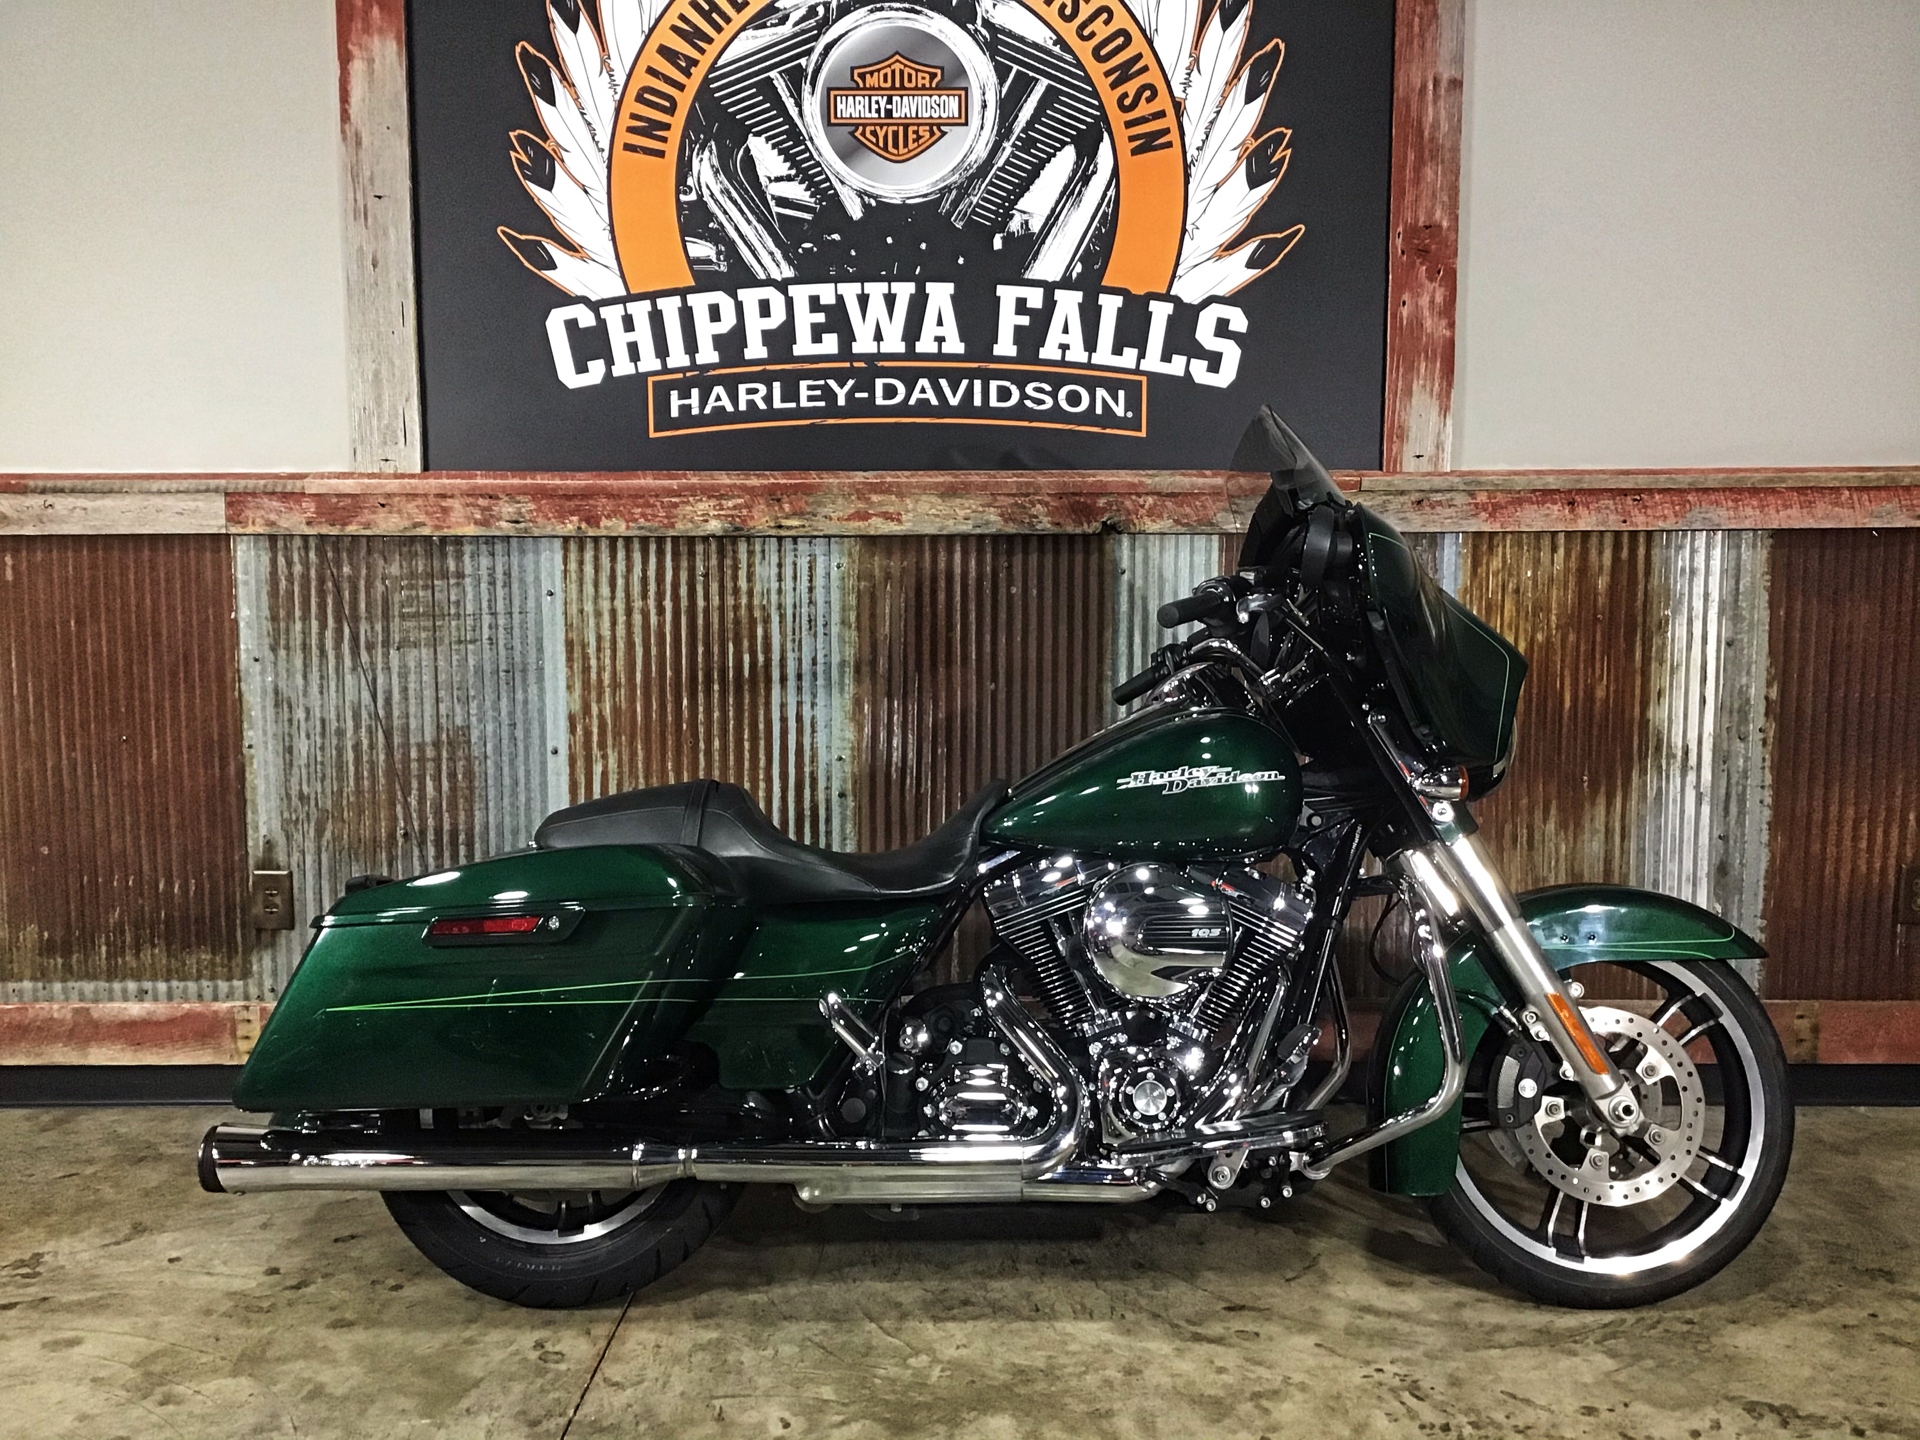 2015 Harley-Davidson Street Glide® Special in Chippewa Falls, Wisconsin - Photo 1